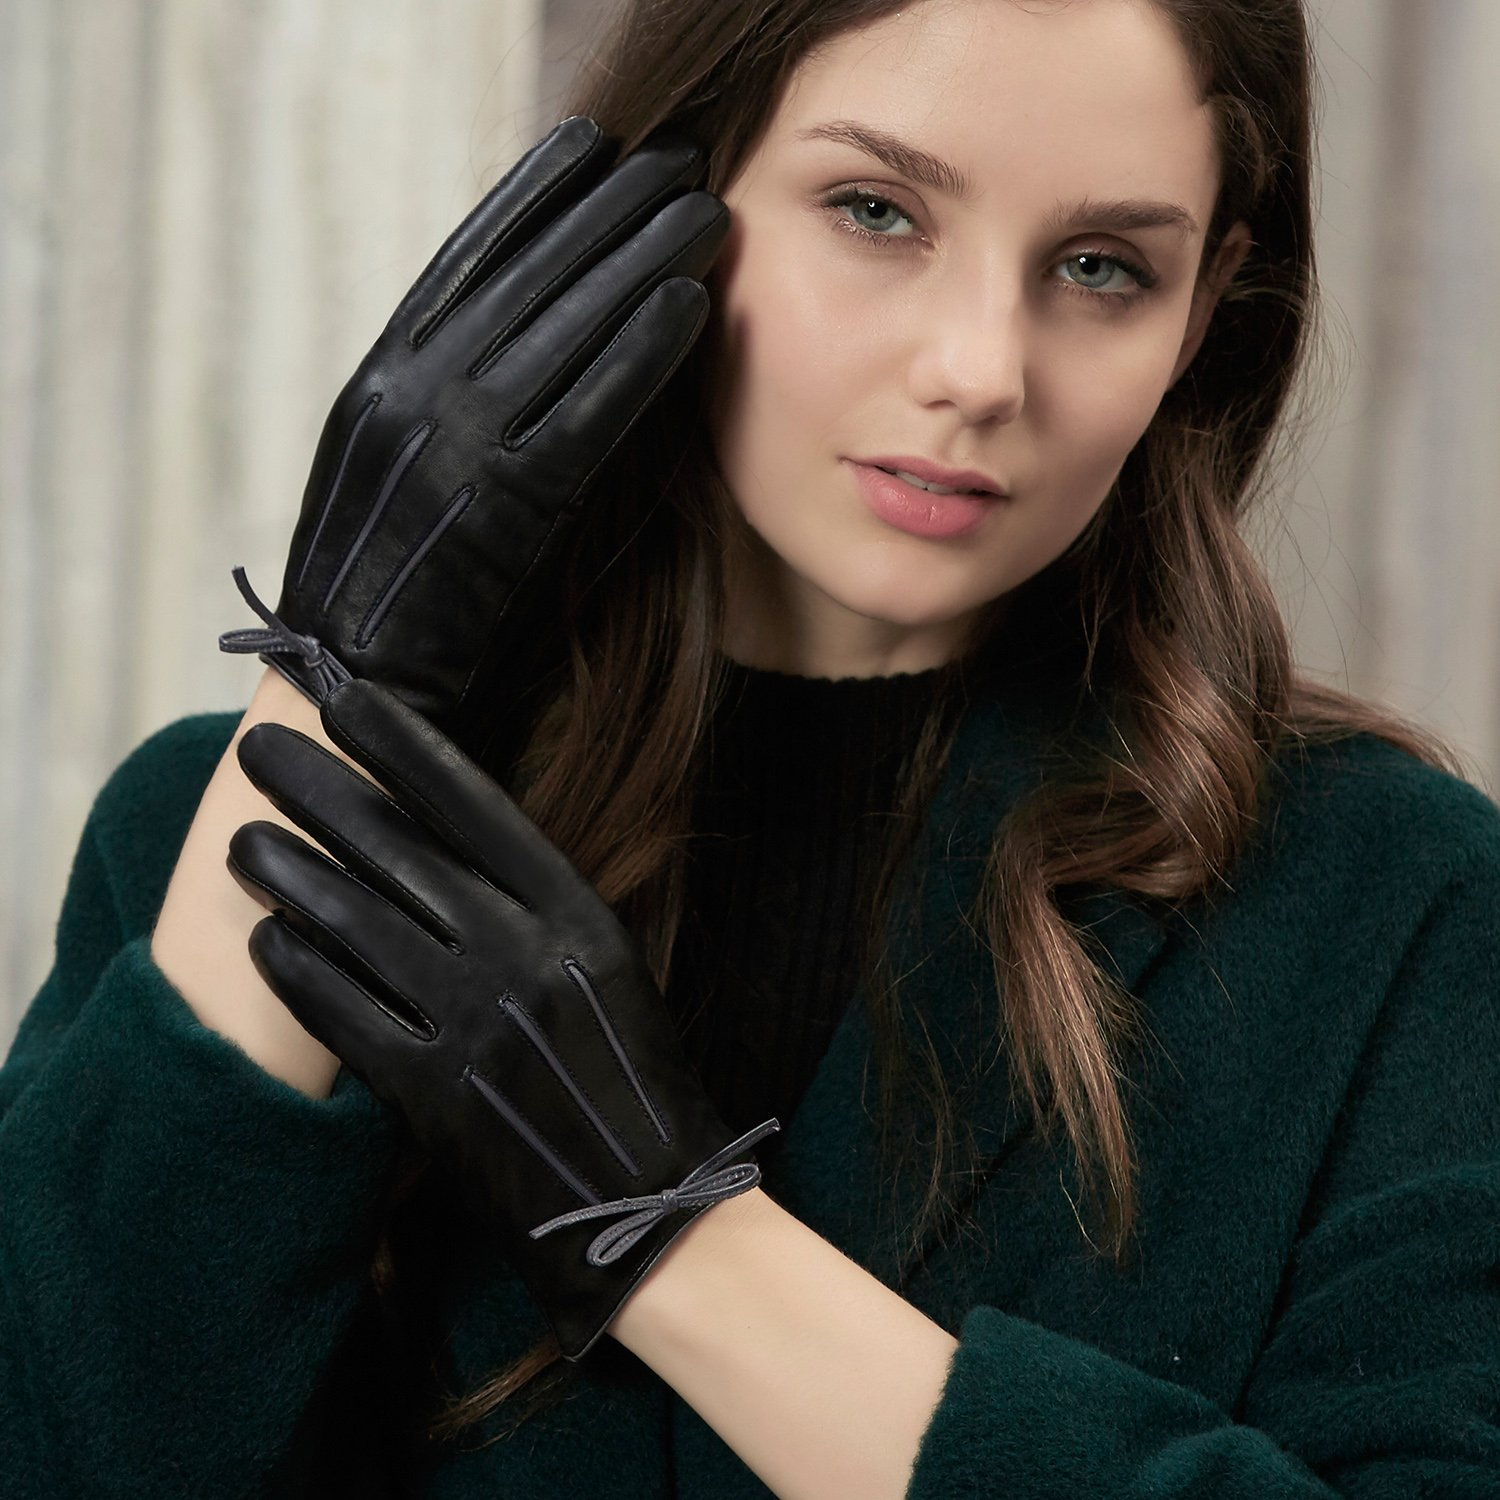 GSG Womens Feminine Colorblock Bow Touchscreen Driving Gloves Ladies Genuine Leather Warm Outdoor Gloves Winter Nice Gifts Black 7 by GSG (Image #2)